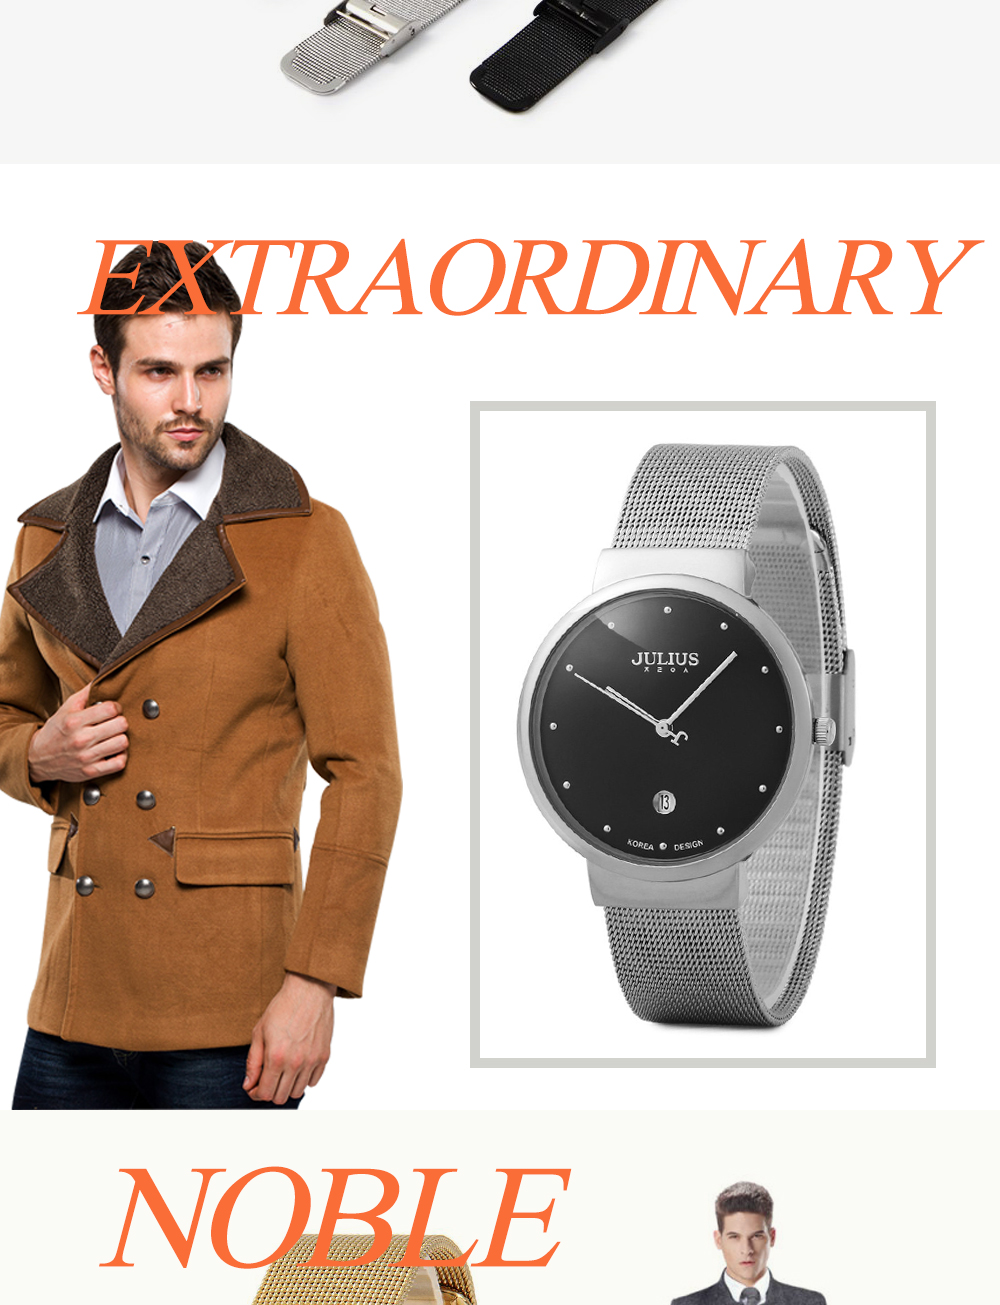 Top Watches Men Luxury Julius Brand Men's Watches Stainless Steel Analog Display Quartz Men Wrist watch Ultra Thin Dial Relogio 8